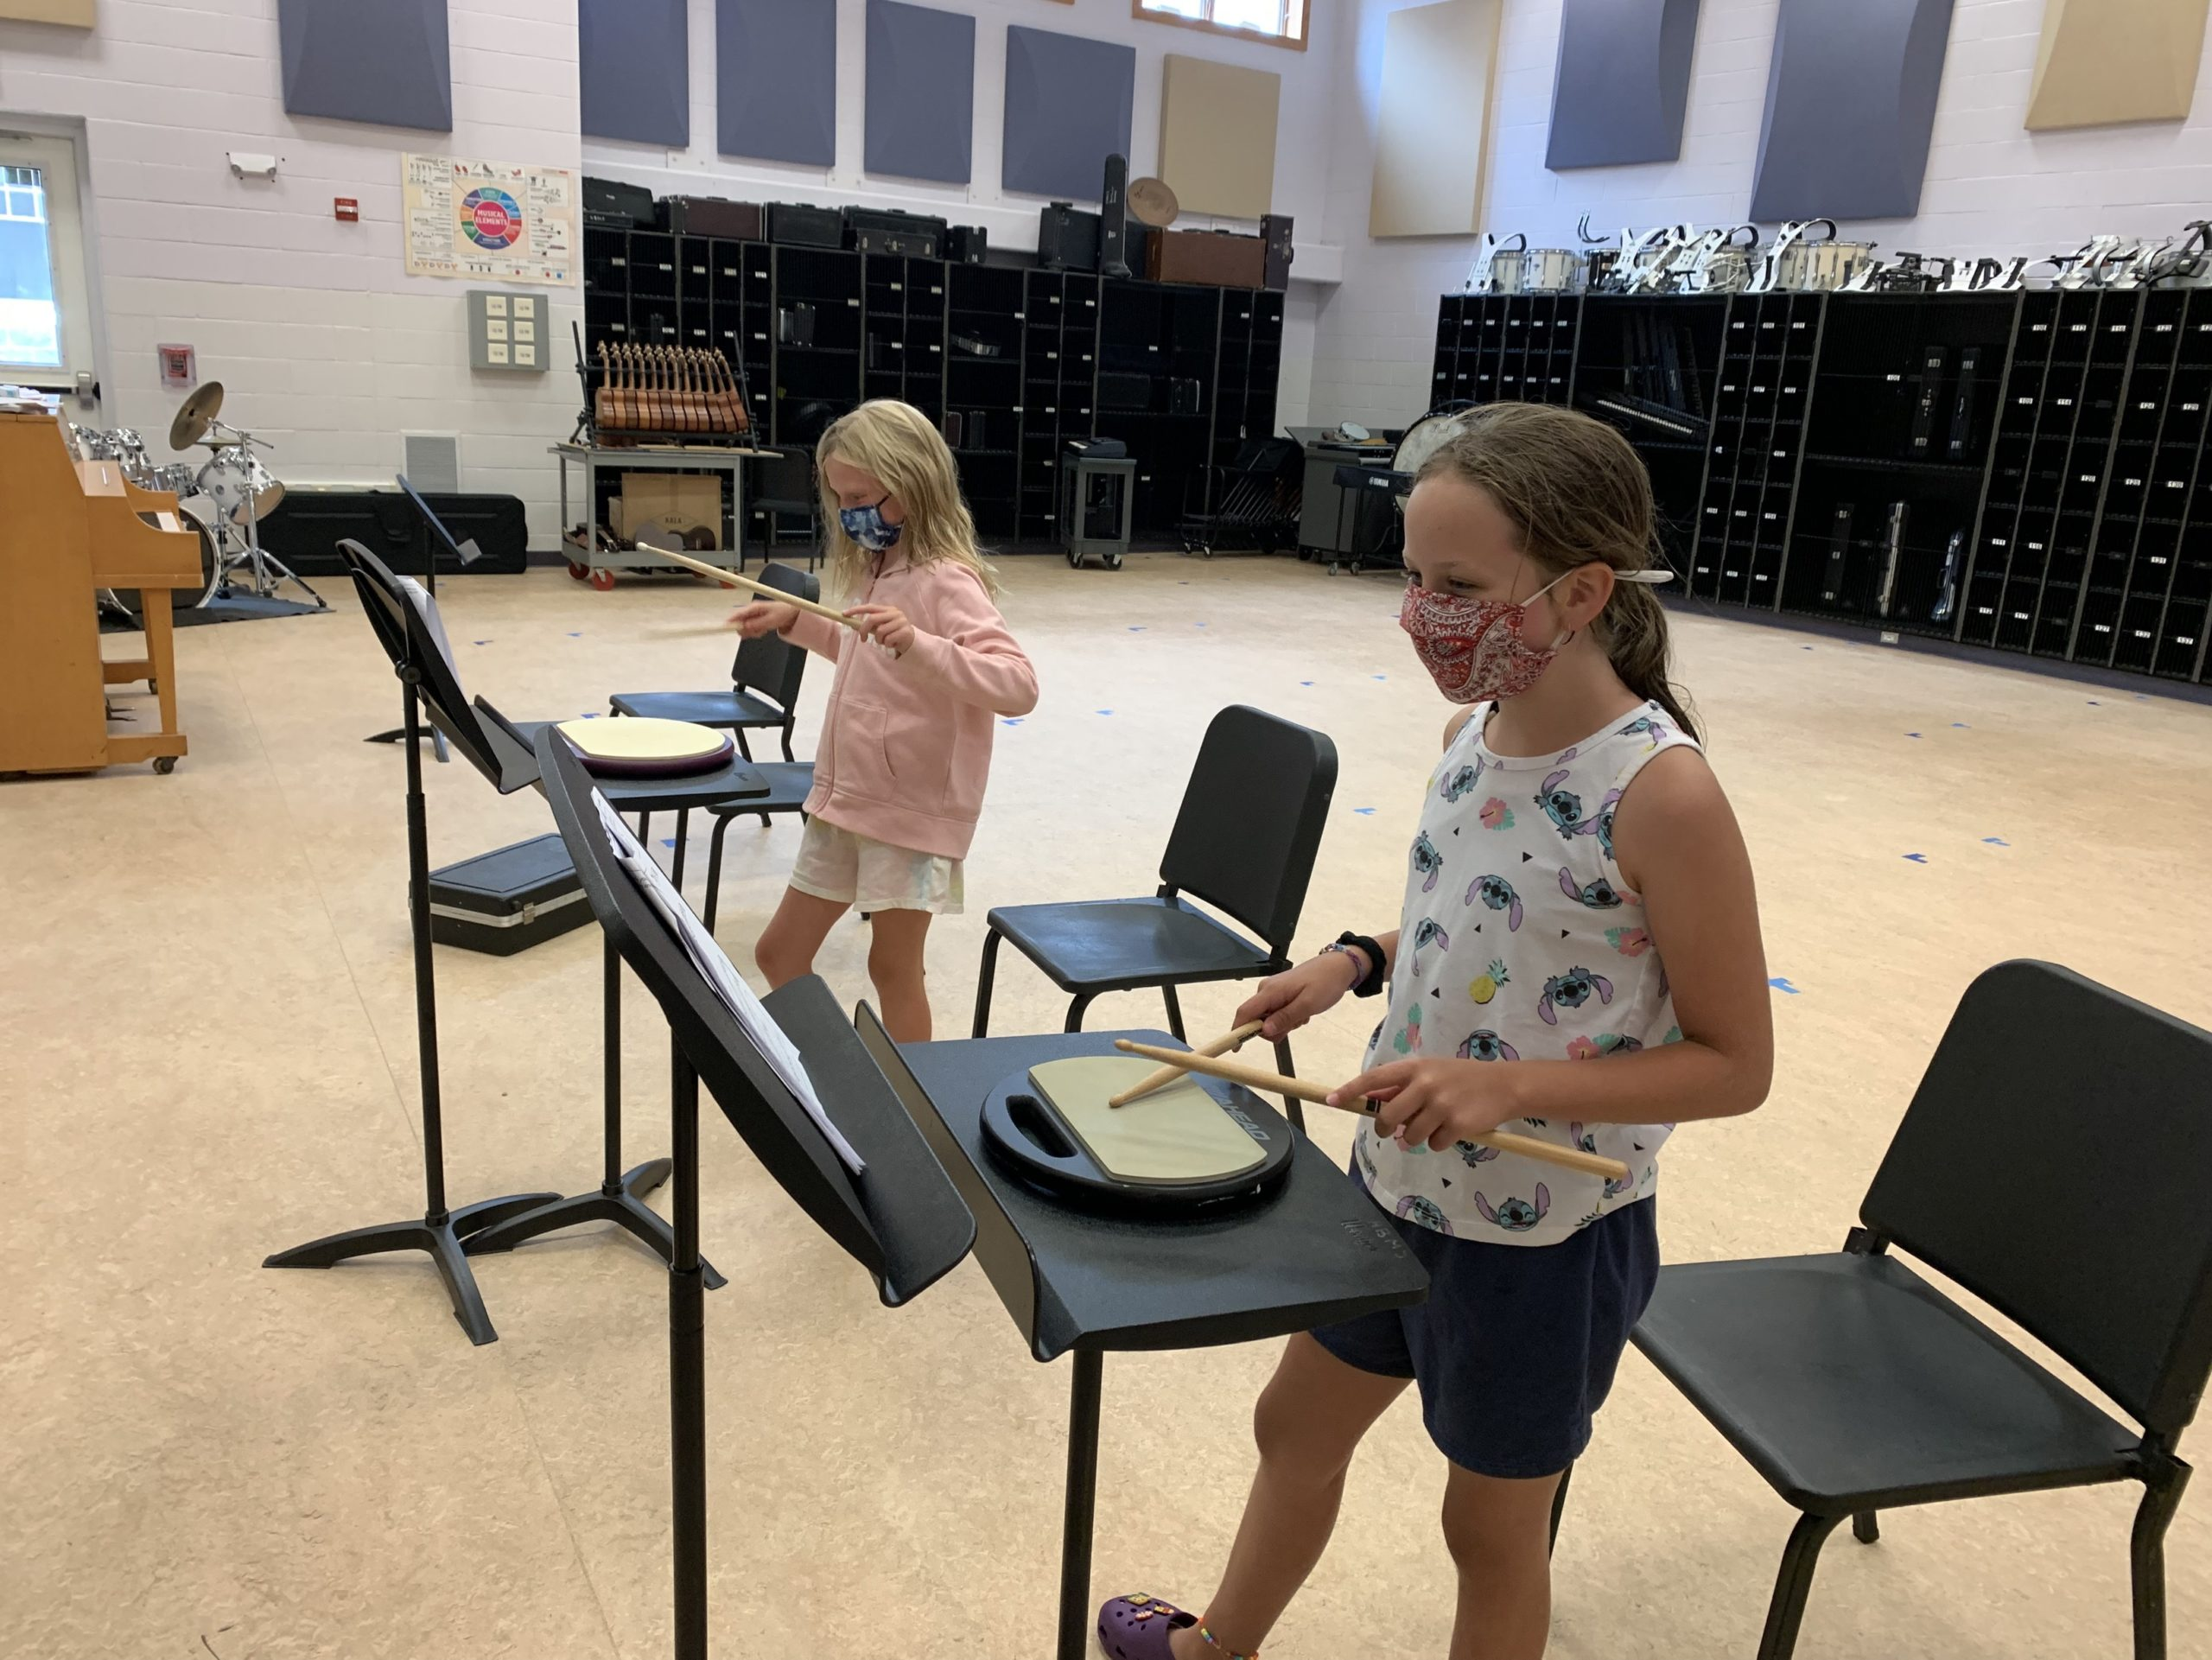 The Hampton Bays School District's Summer Instrumental Music Program introduced middle school students to a variety of band instruments.